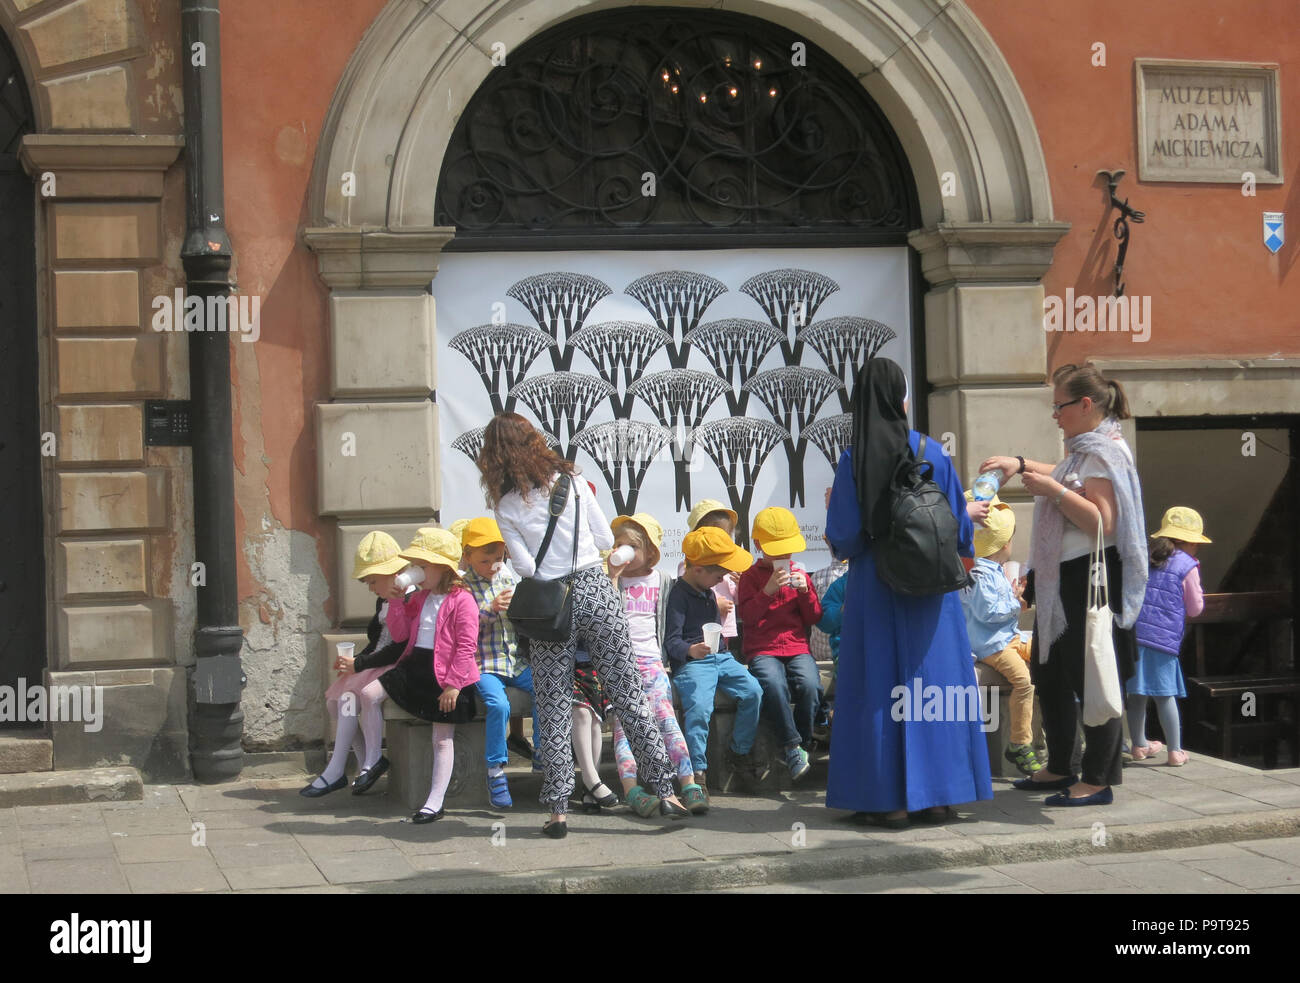 A group of schoolchildren before the Adama Mickiewicza museum,  visiting the old town, Warsaw, Poland - Stock Image